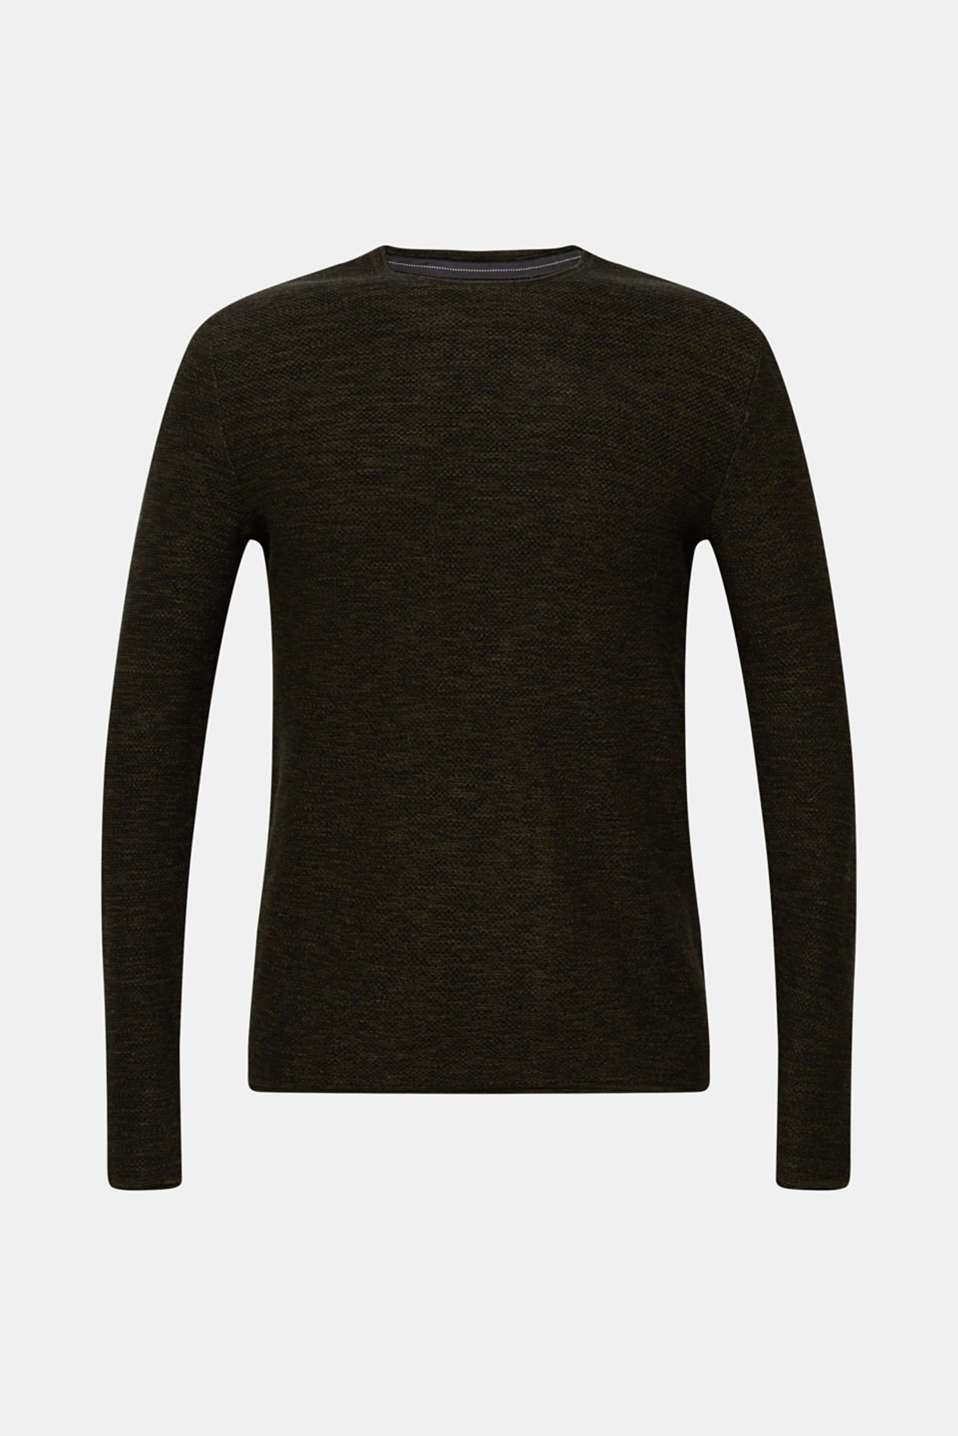 Textured jumper made of 100% cotton, KHAKI GREEN, detail image number 6